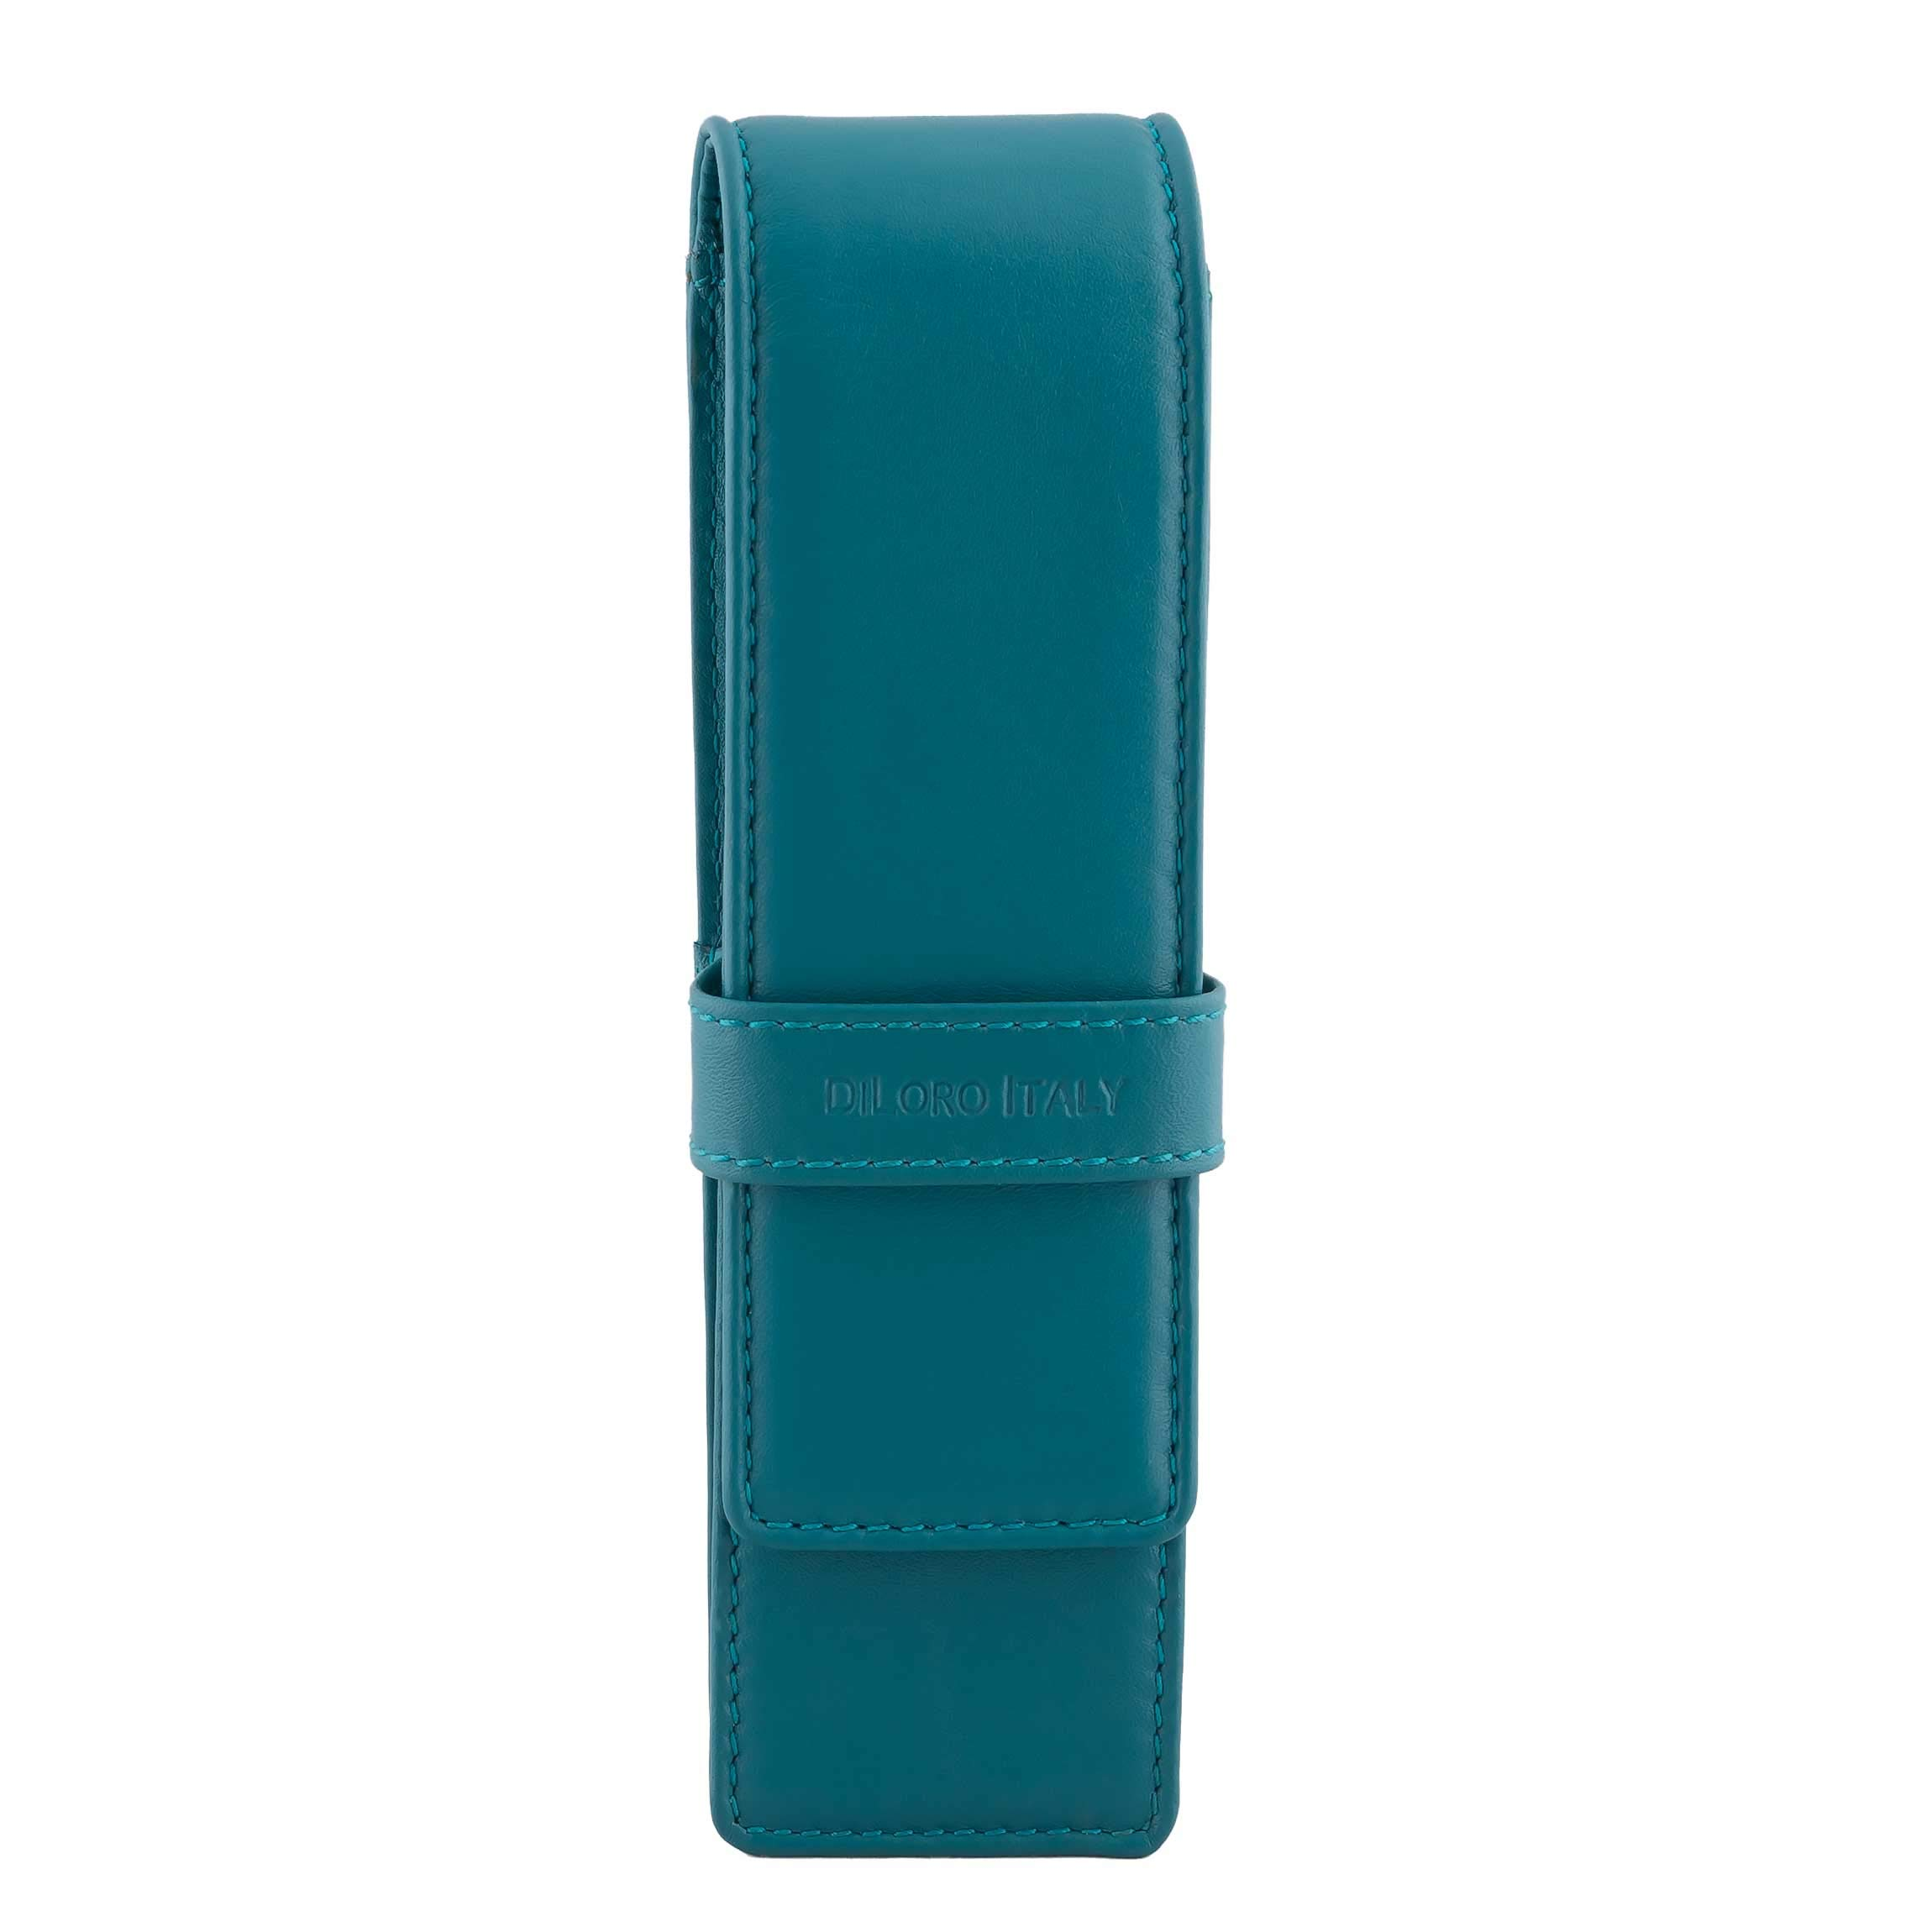 DiLoro Leather Pen Case Pouch Holder for Two Fountain Pens Ballpoint Rollerball Pen or Pencils (Turquoise Green)